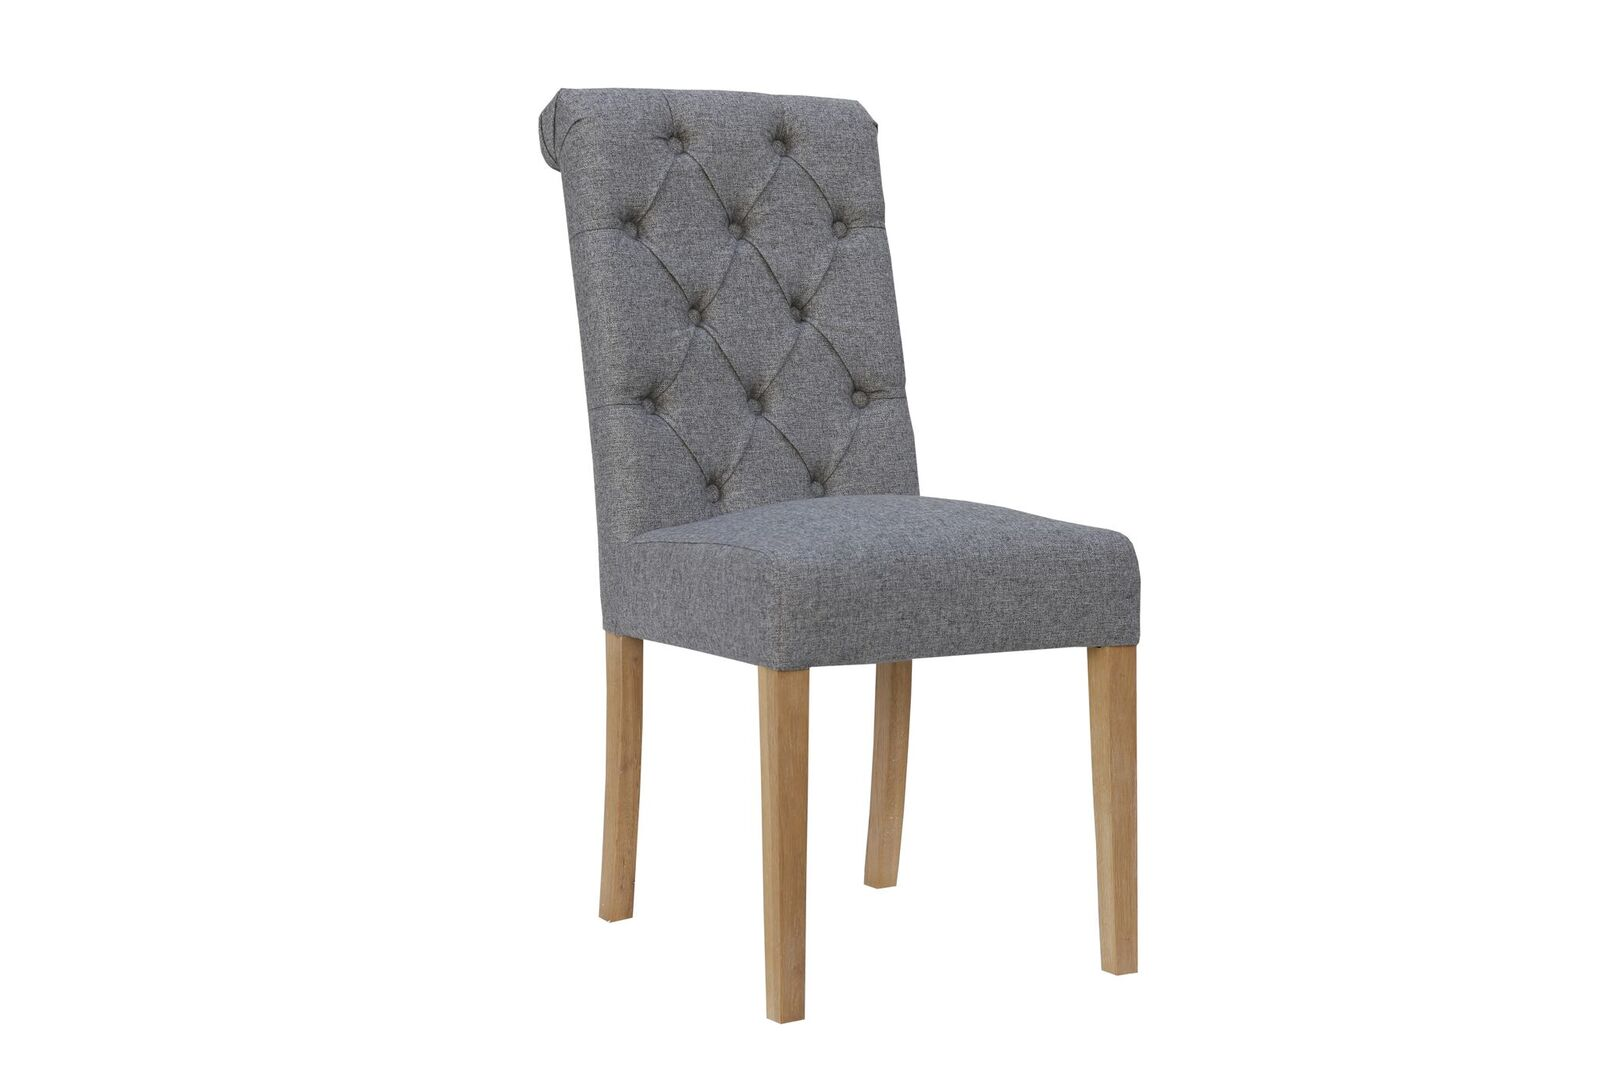 CH28LG Cavendish button back scroll top chair - light grey with oak legs